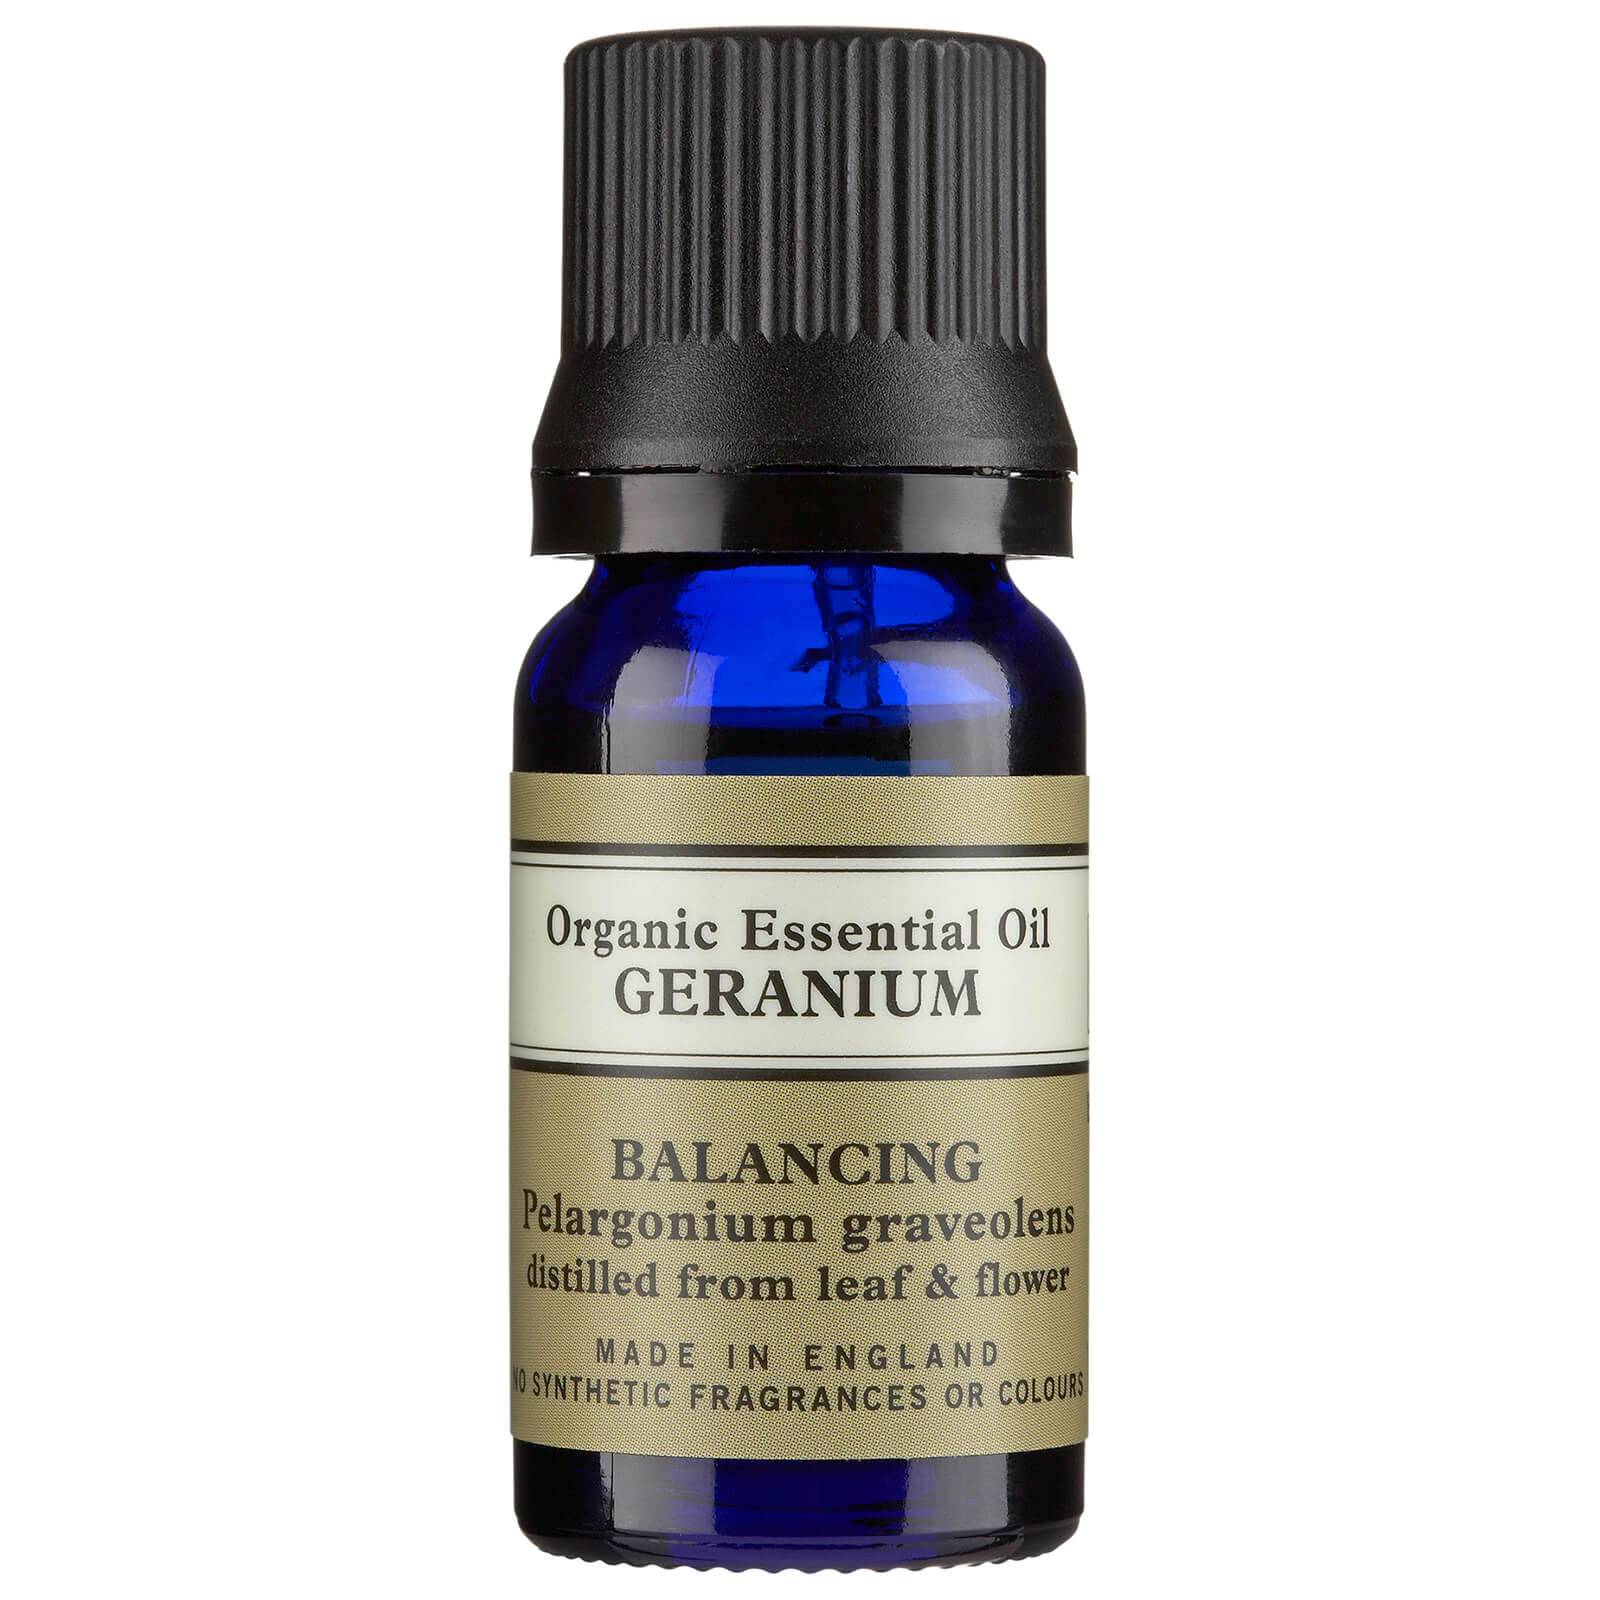 Neal's Yard Remedies Huile Essentielle de Géranium Bio Neal's Yard Remedies 10 ml